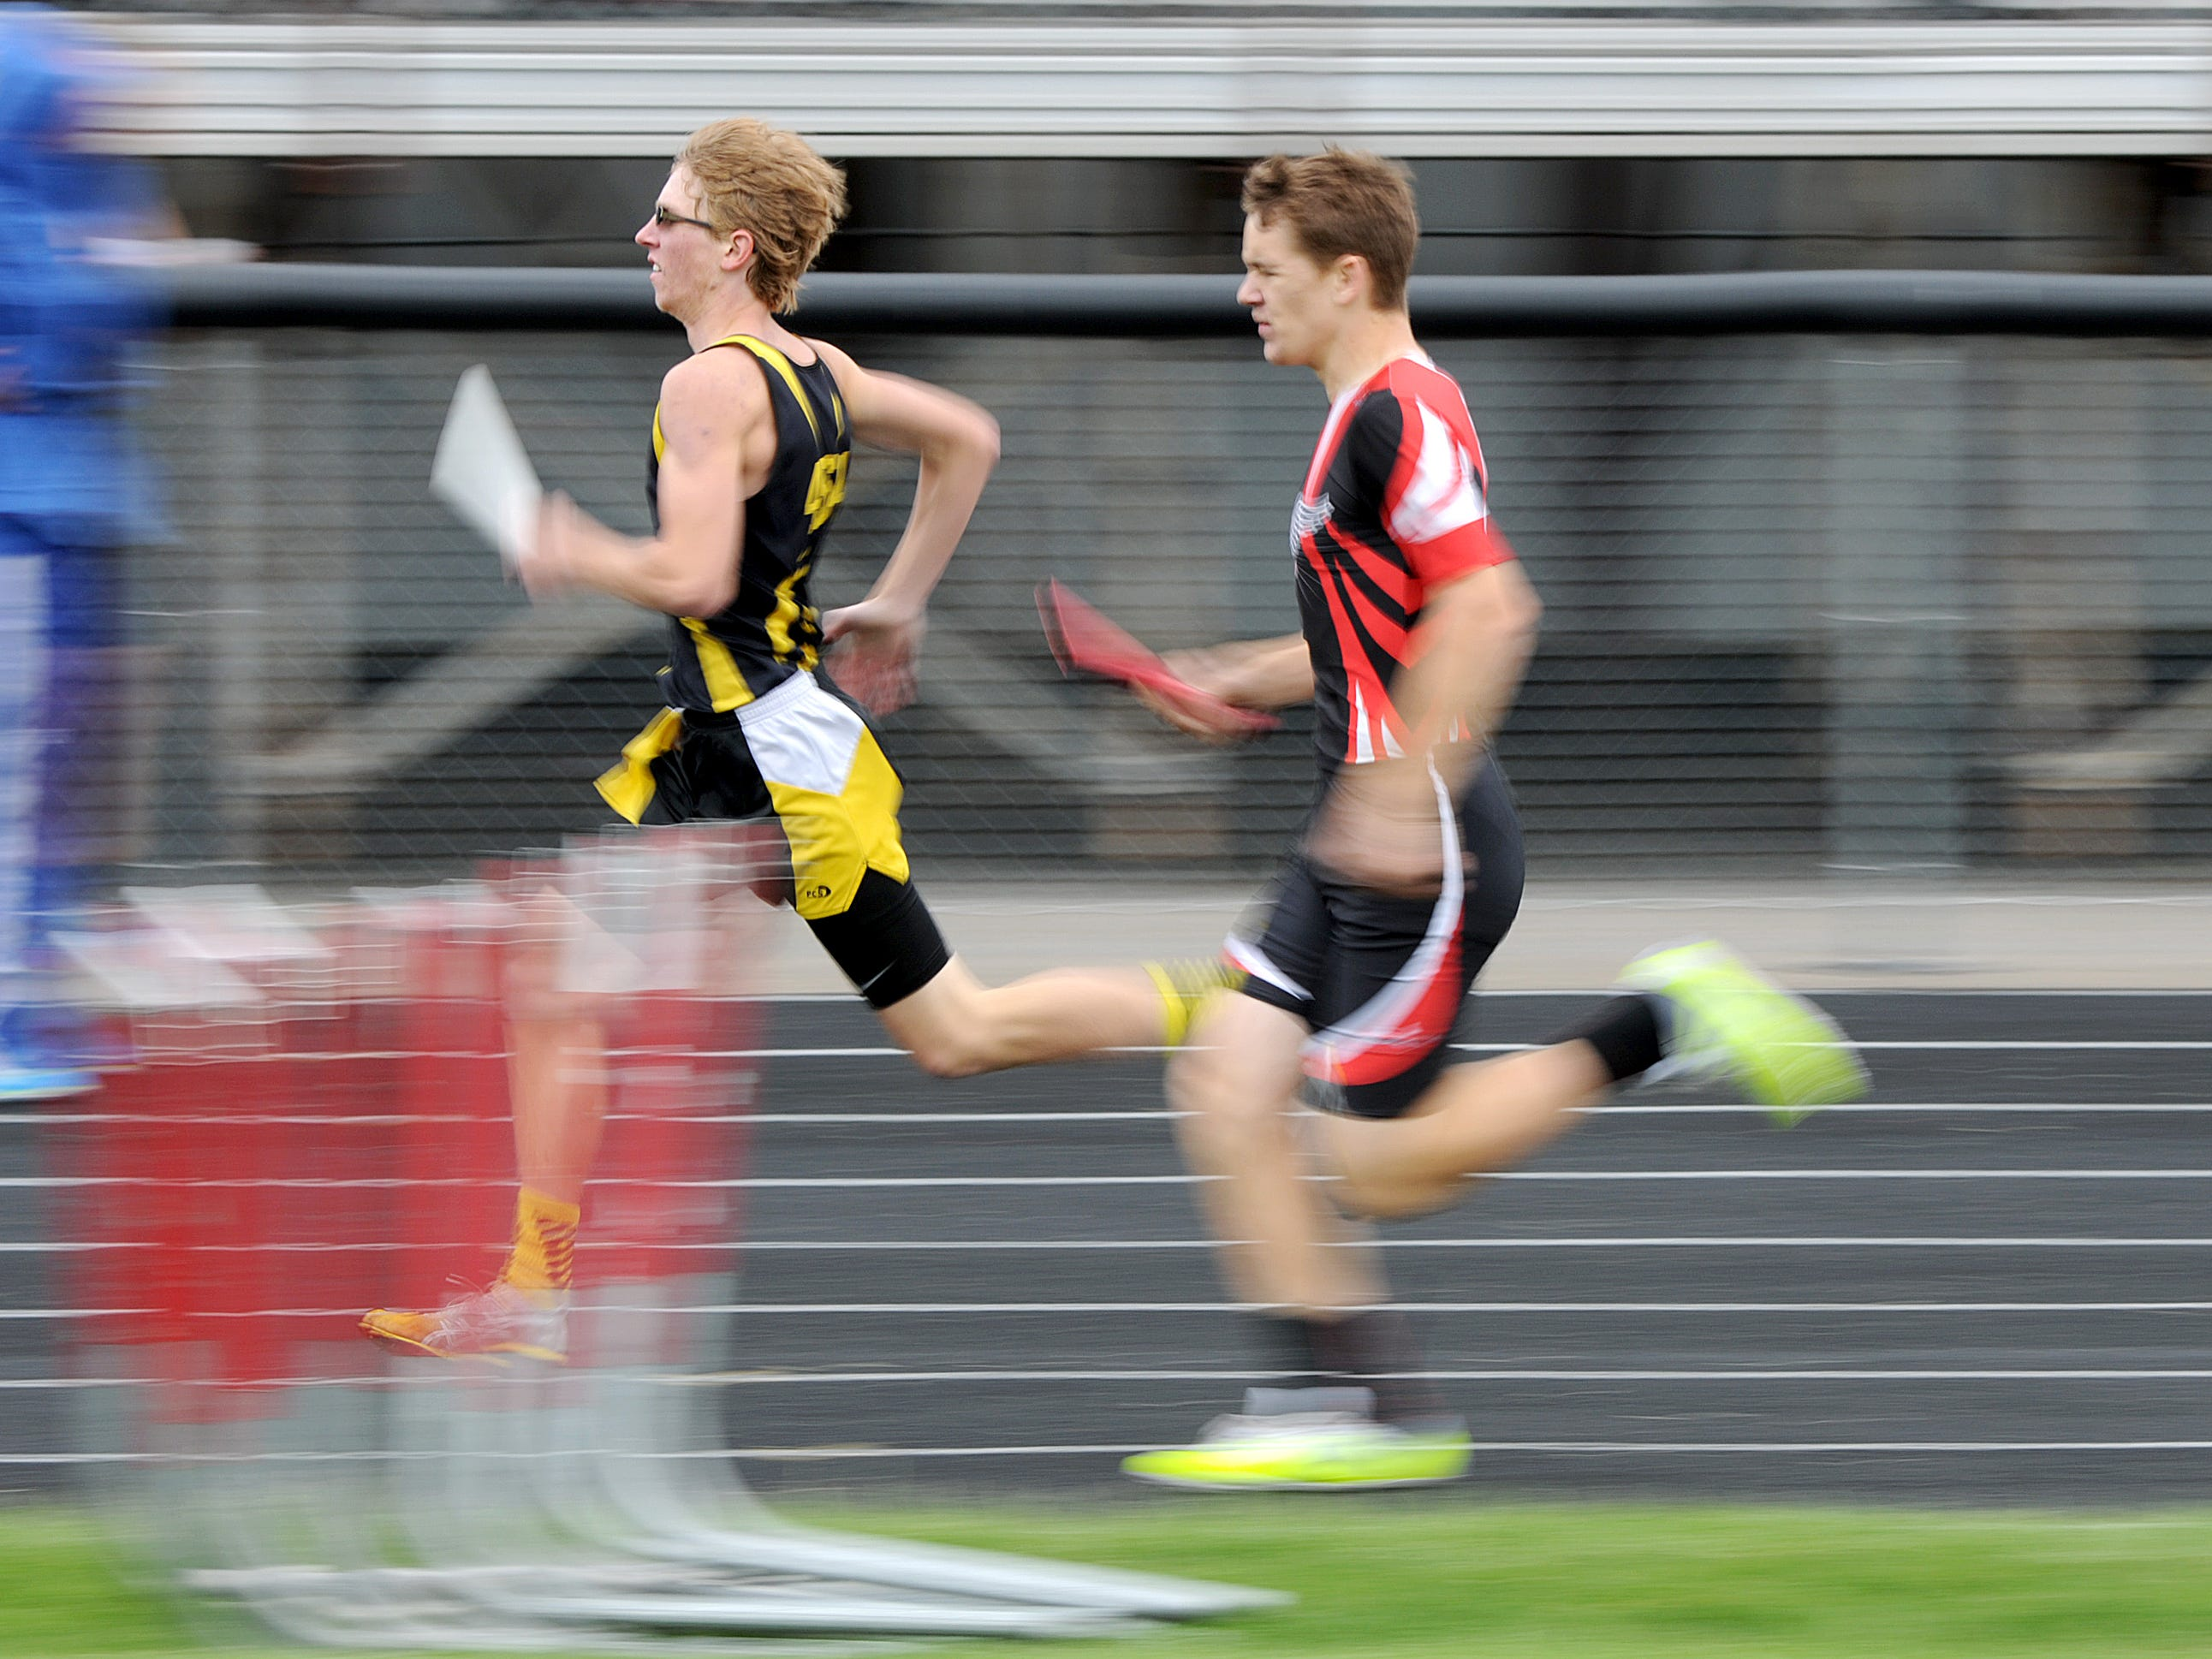 Colonel Crawford's Brad Bauer and Crestview's Noah Shriver of Crestview sprint to the finish during their leg of the boys 4 x 800 meter relay in Thursday's Division III district track meet at Bucyrus. Crawford won the race and Crestview took second